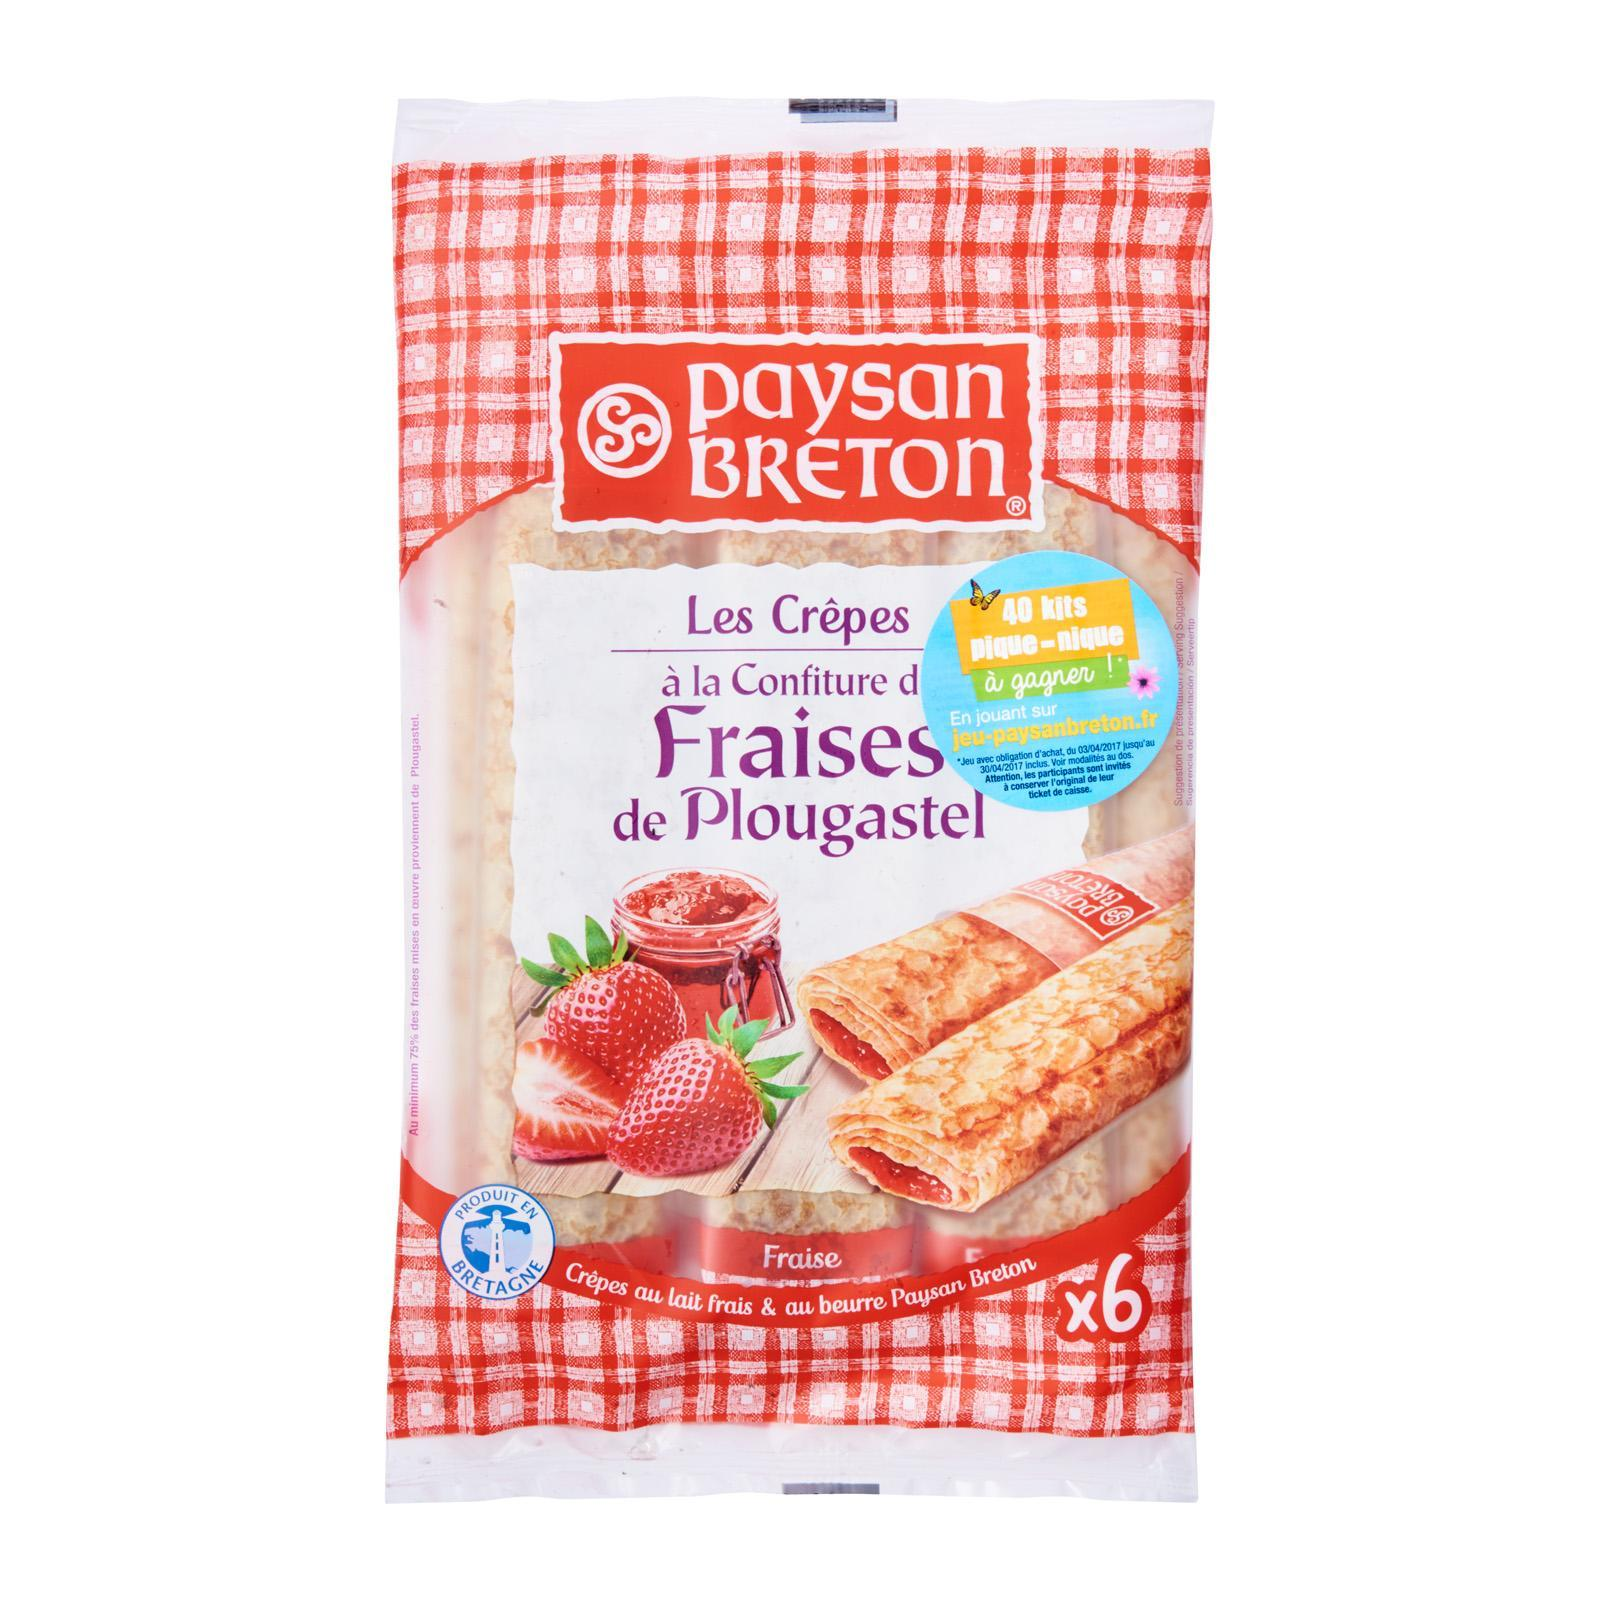 Paysan Breton Strawberry Crepes By Redmart.